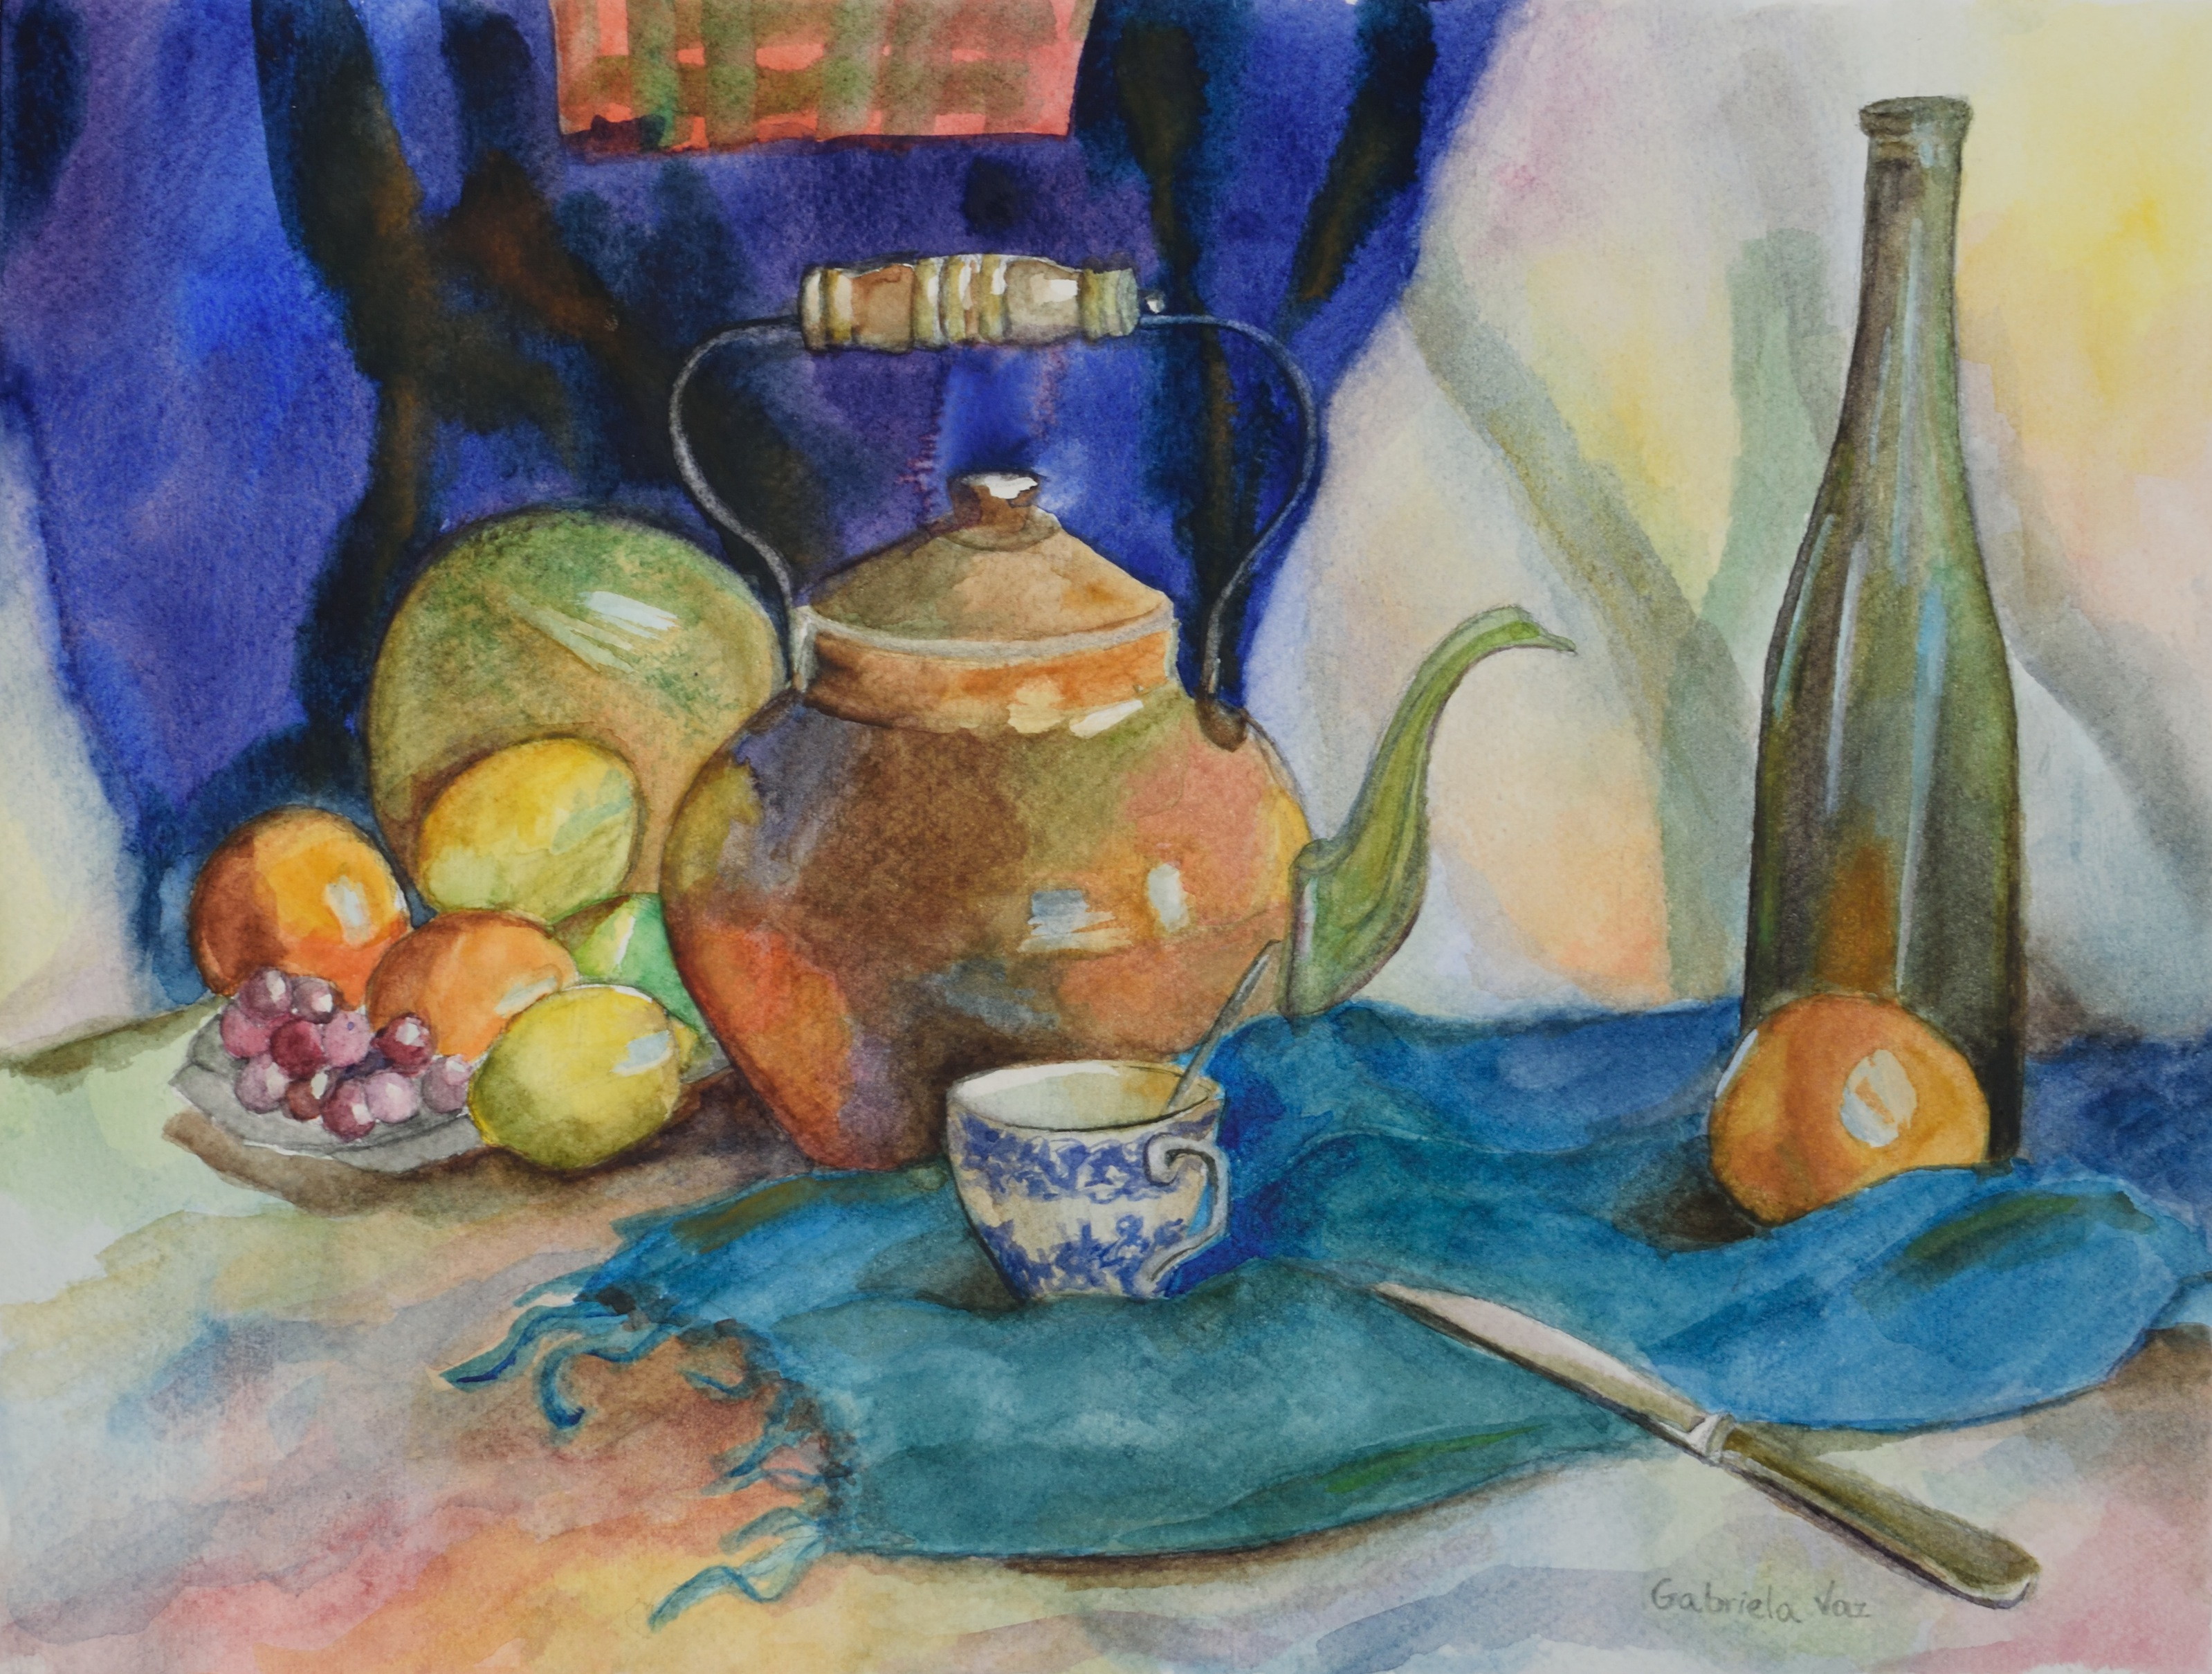 Tea, wine and fruit, watercolor on paper, 20 x 30 cm, 2017